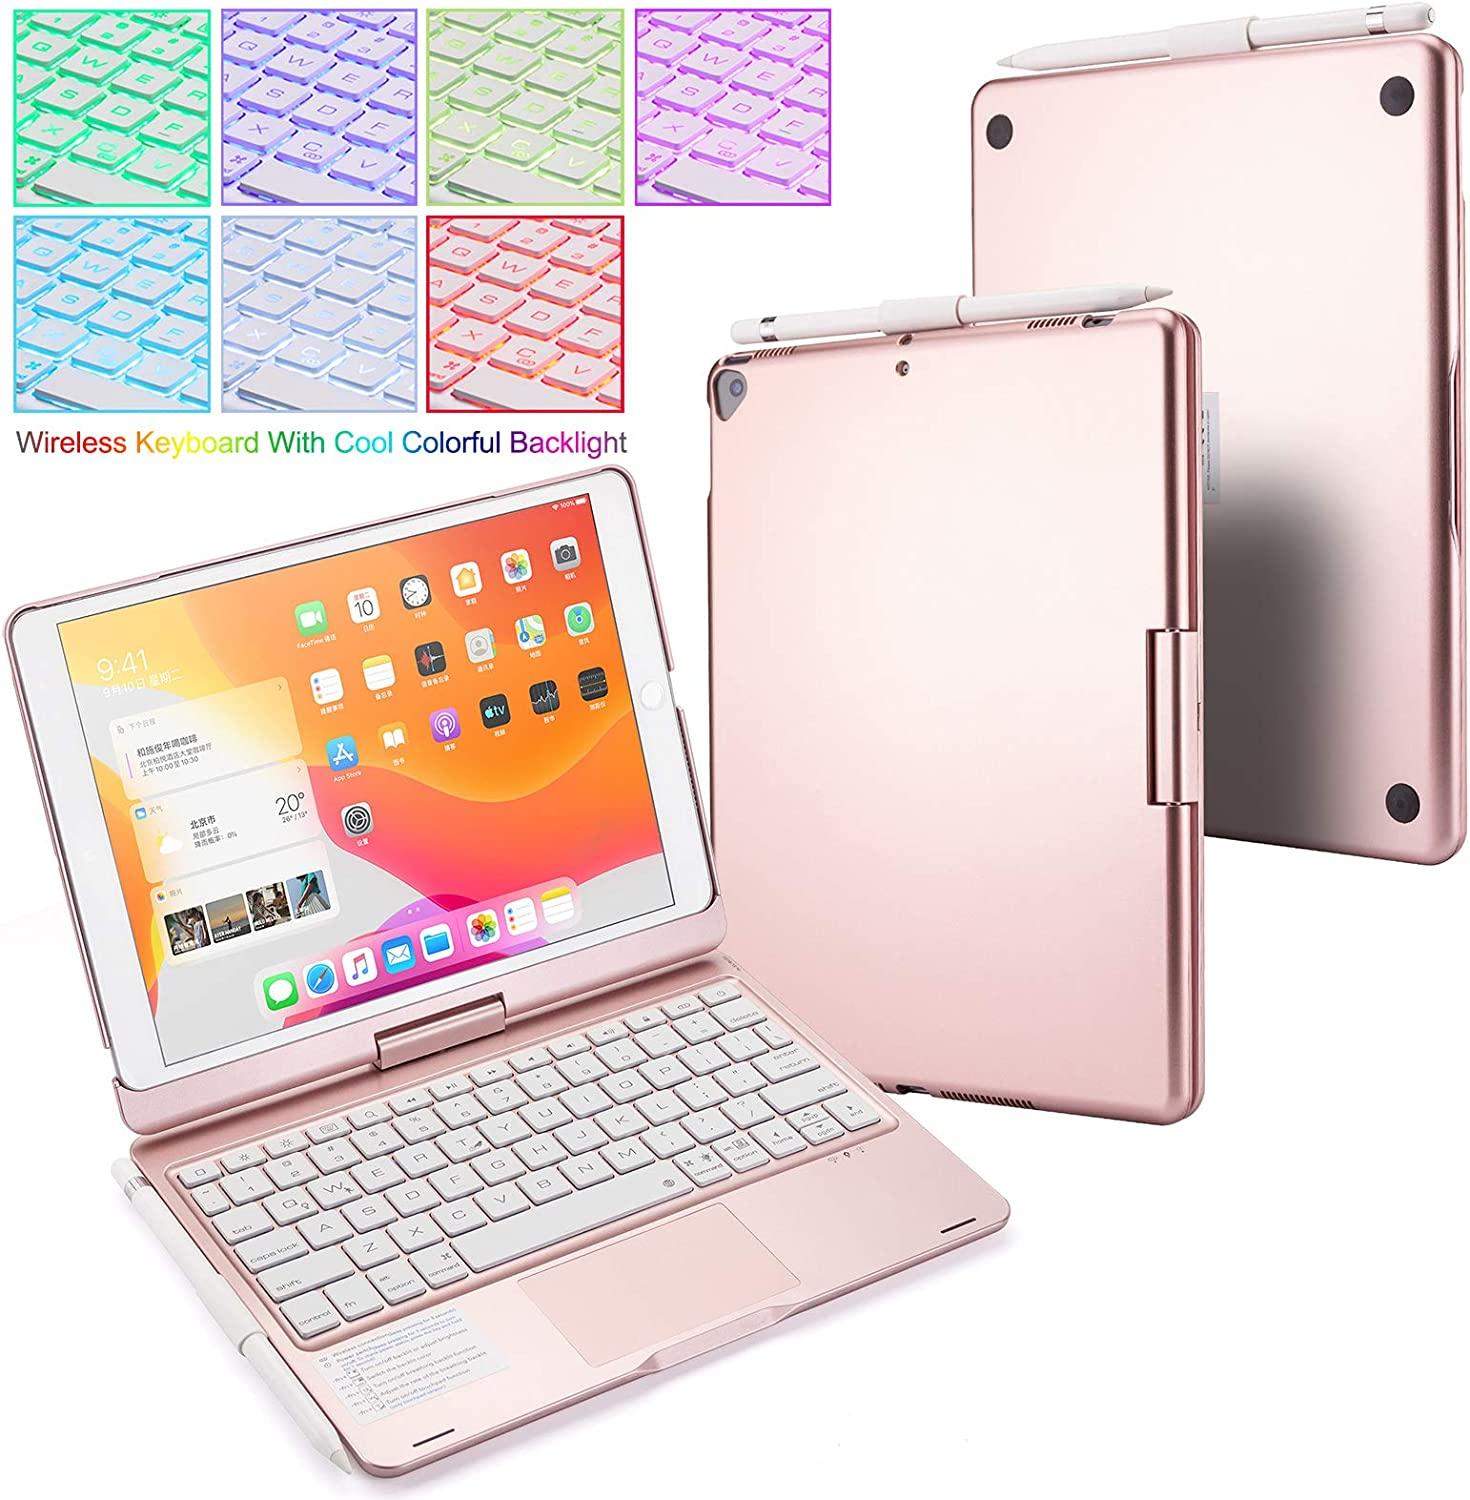 Huafly iPad Keyboard Case for 2020 iPad 10.2 (8th Gen), 2019 iPad Air 10.5, Backlit Keyboard with Touchpad, Wireless Bluetooth 360 Rotatable Case for 10.2/10.5 inch Tablet (Rose)